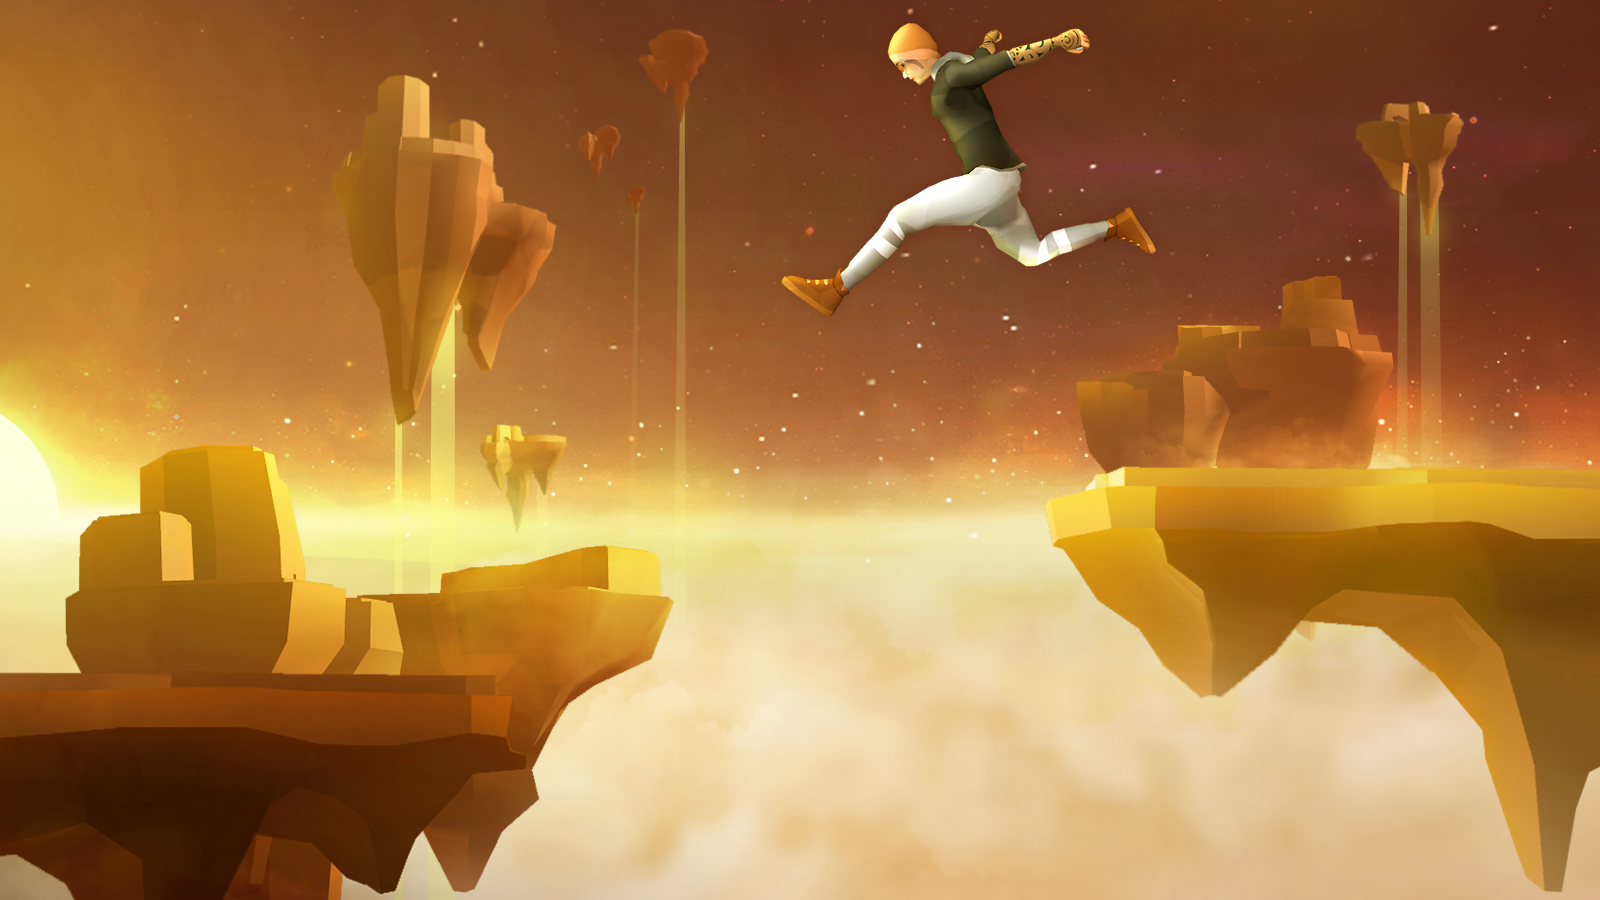 Sky Dancer Run - Running Game- screenshot